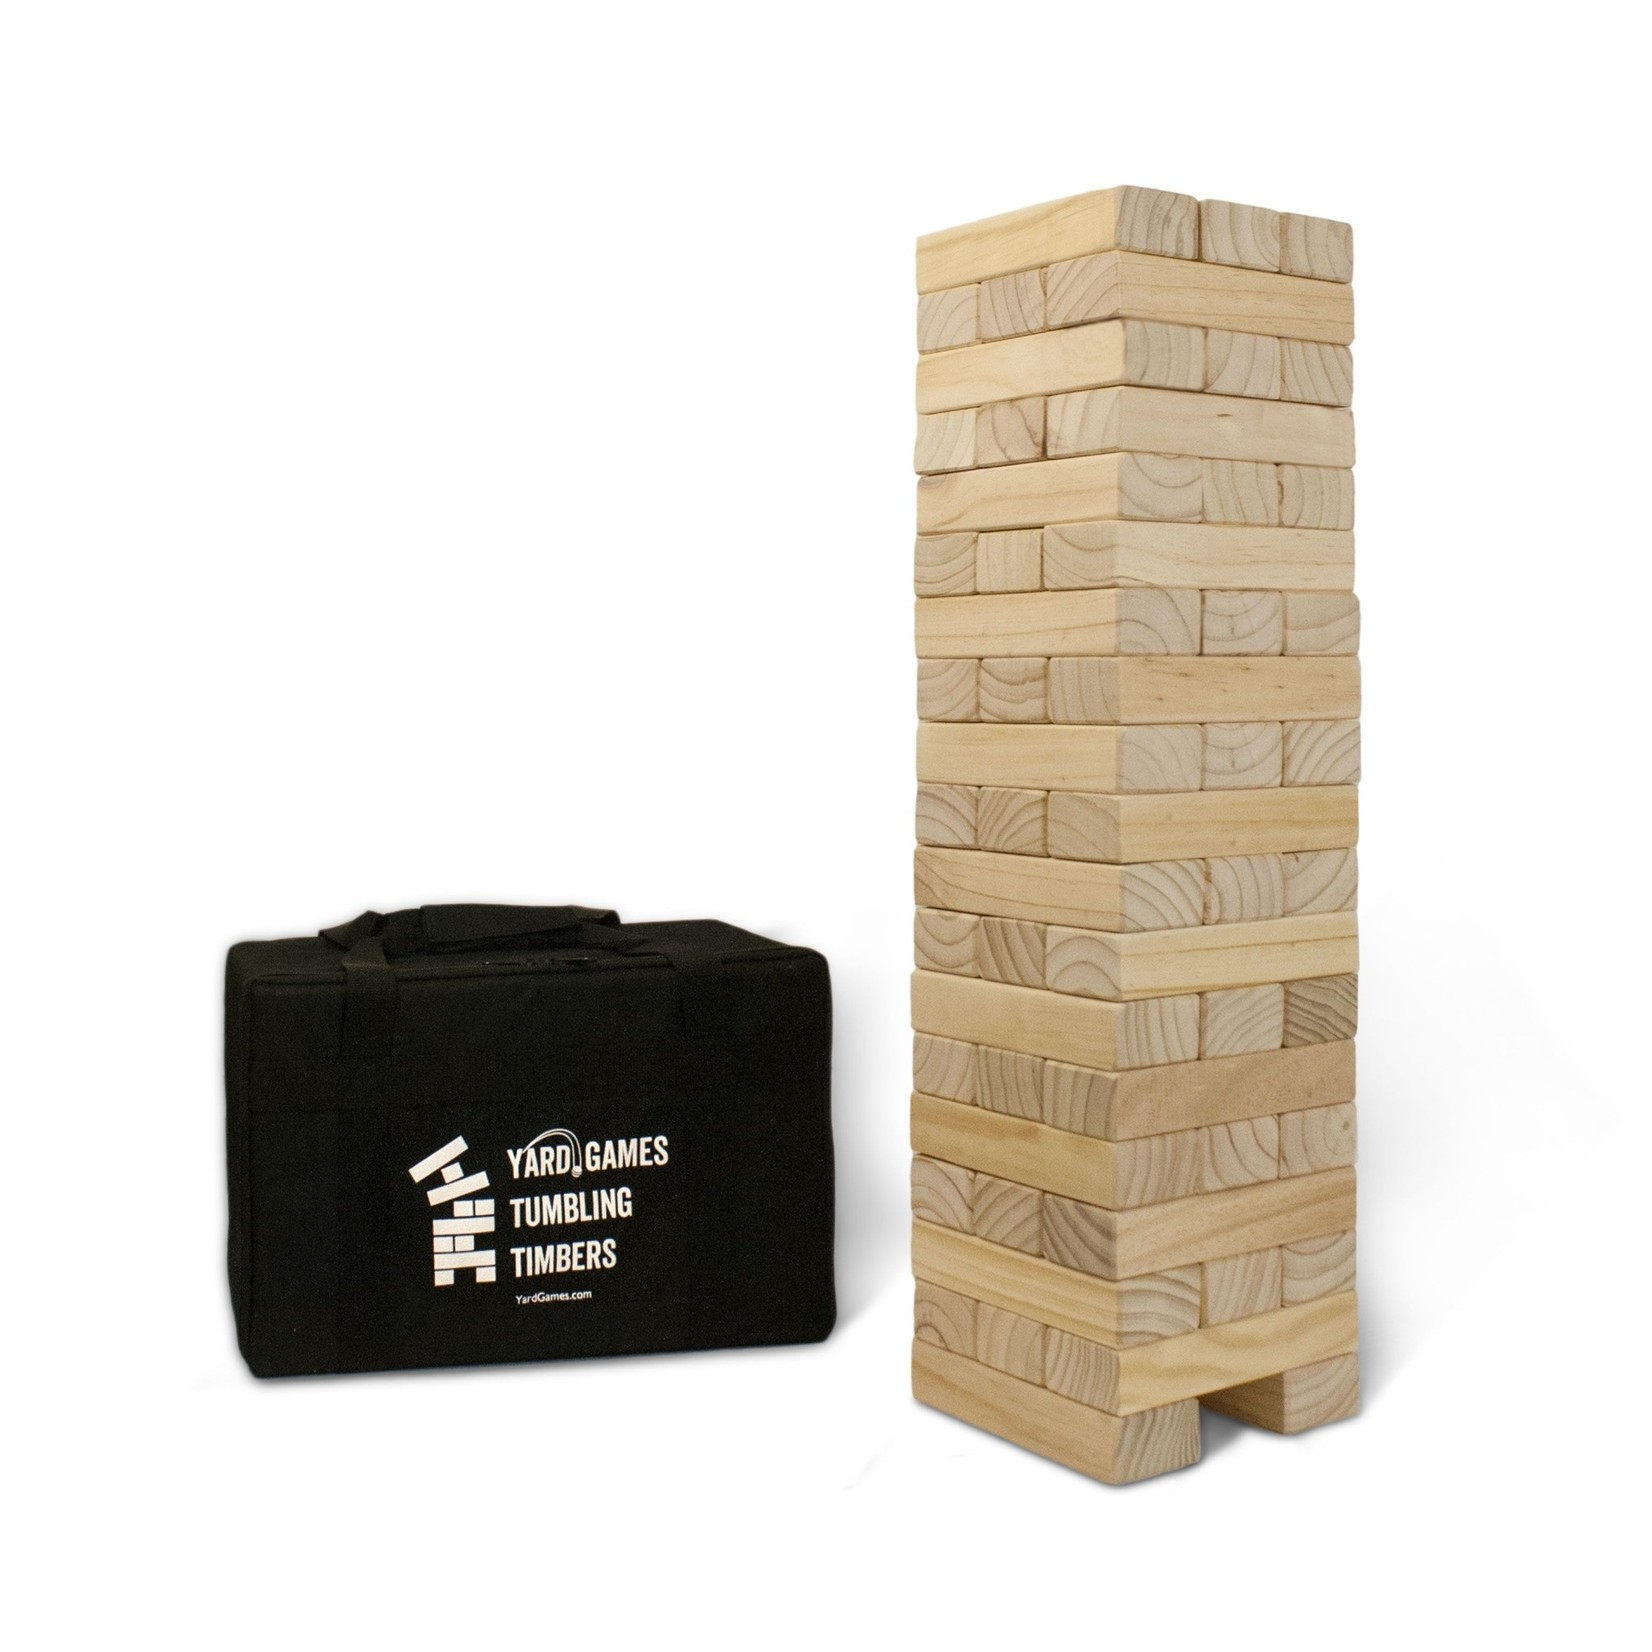 Yard Games Yard Games Giant Tumbling Timbers with Carrying Case